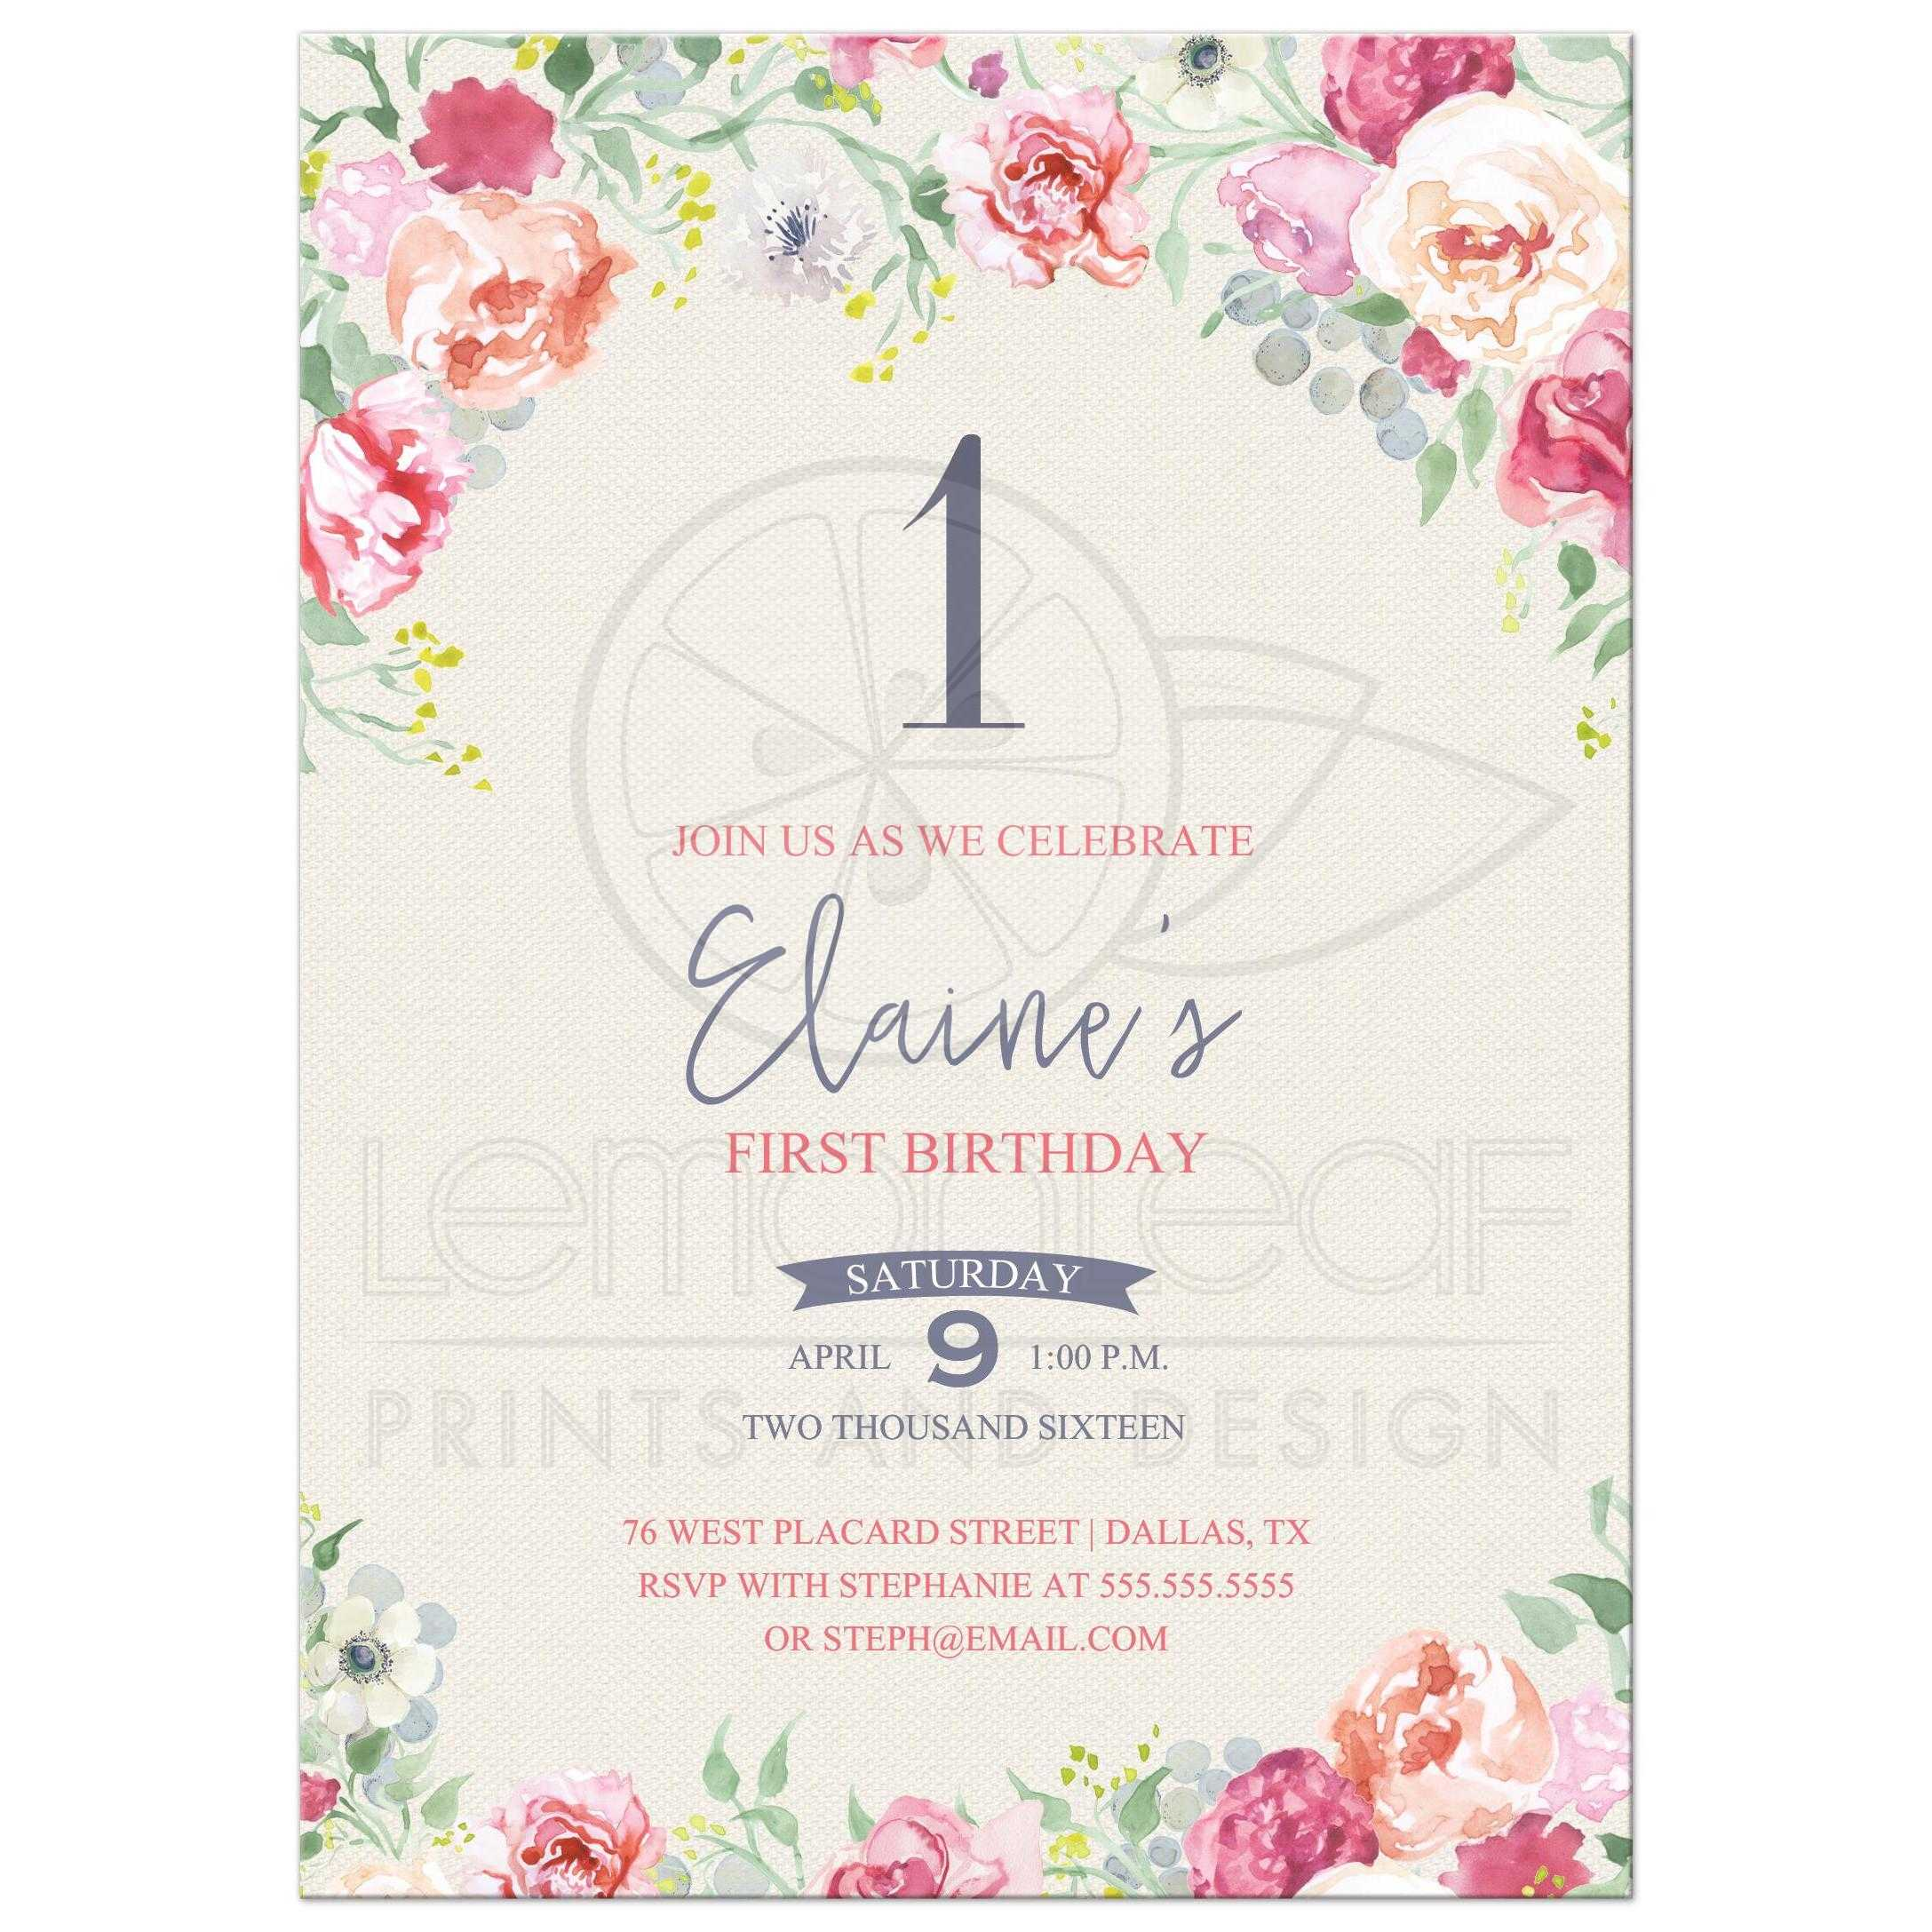 First Birthday Invitation - Pink and Purple Watercolor Flowers